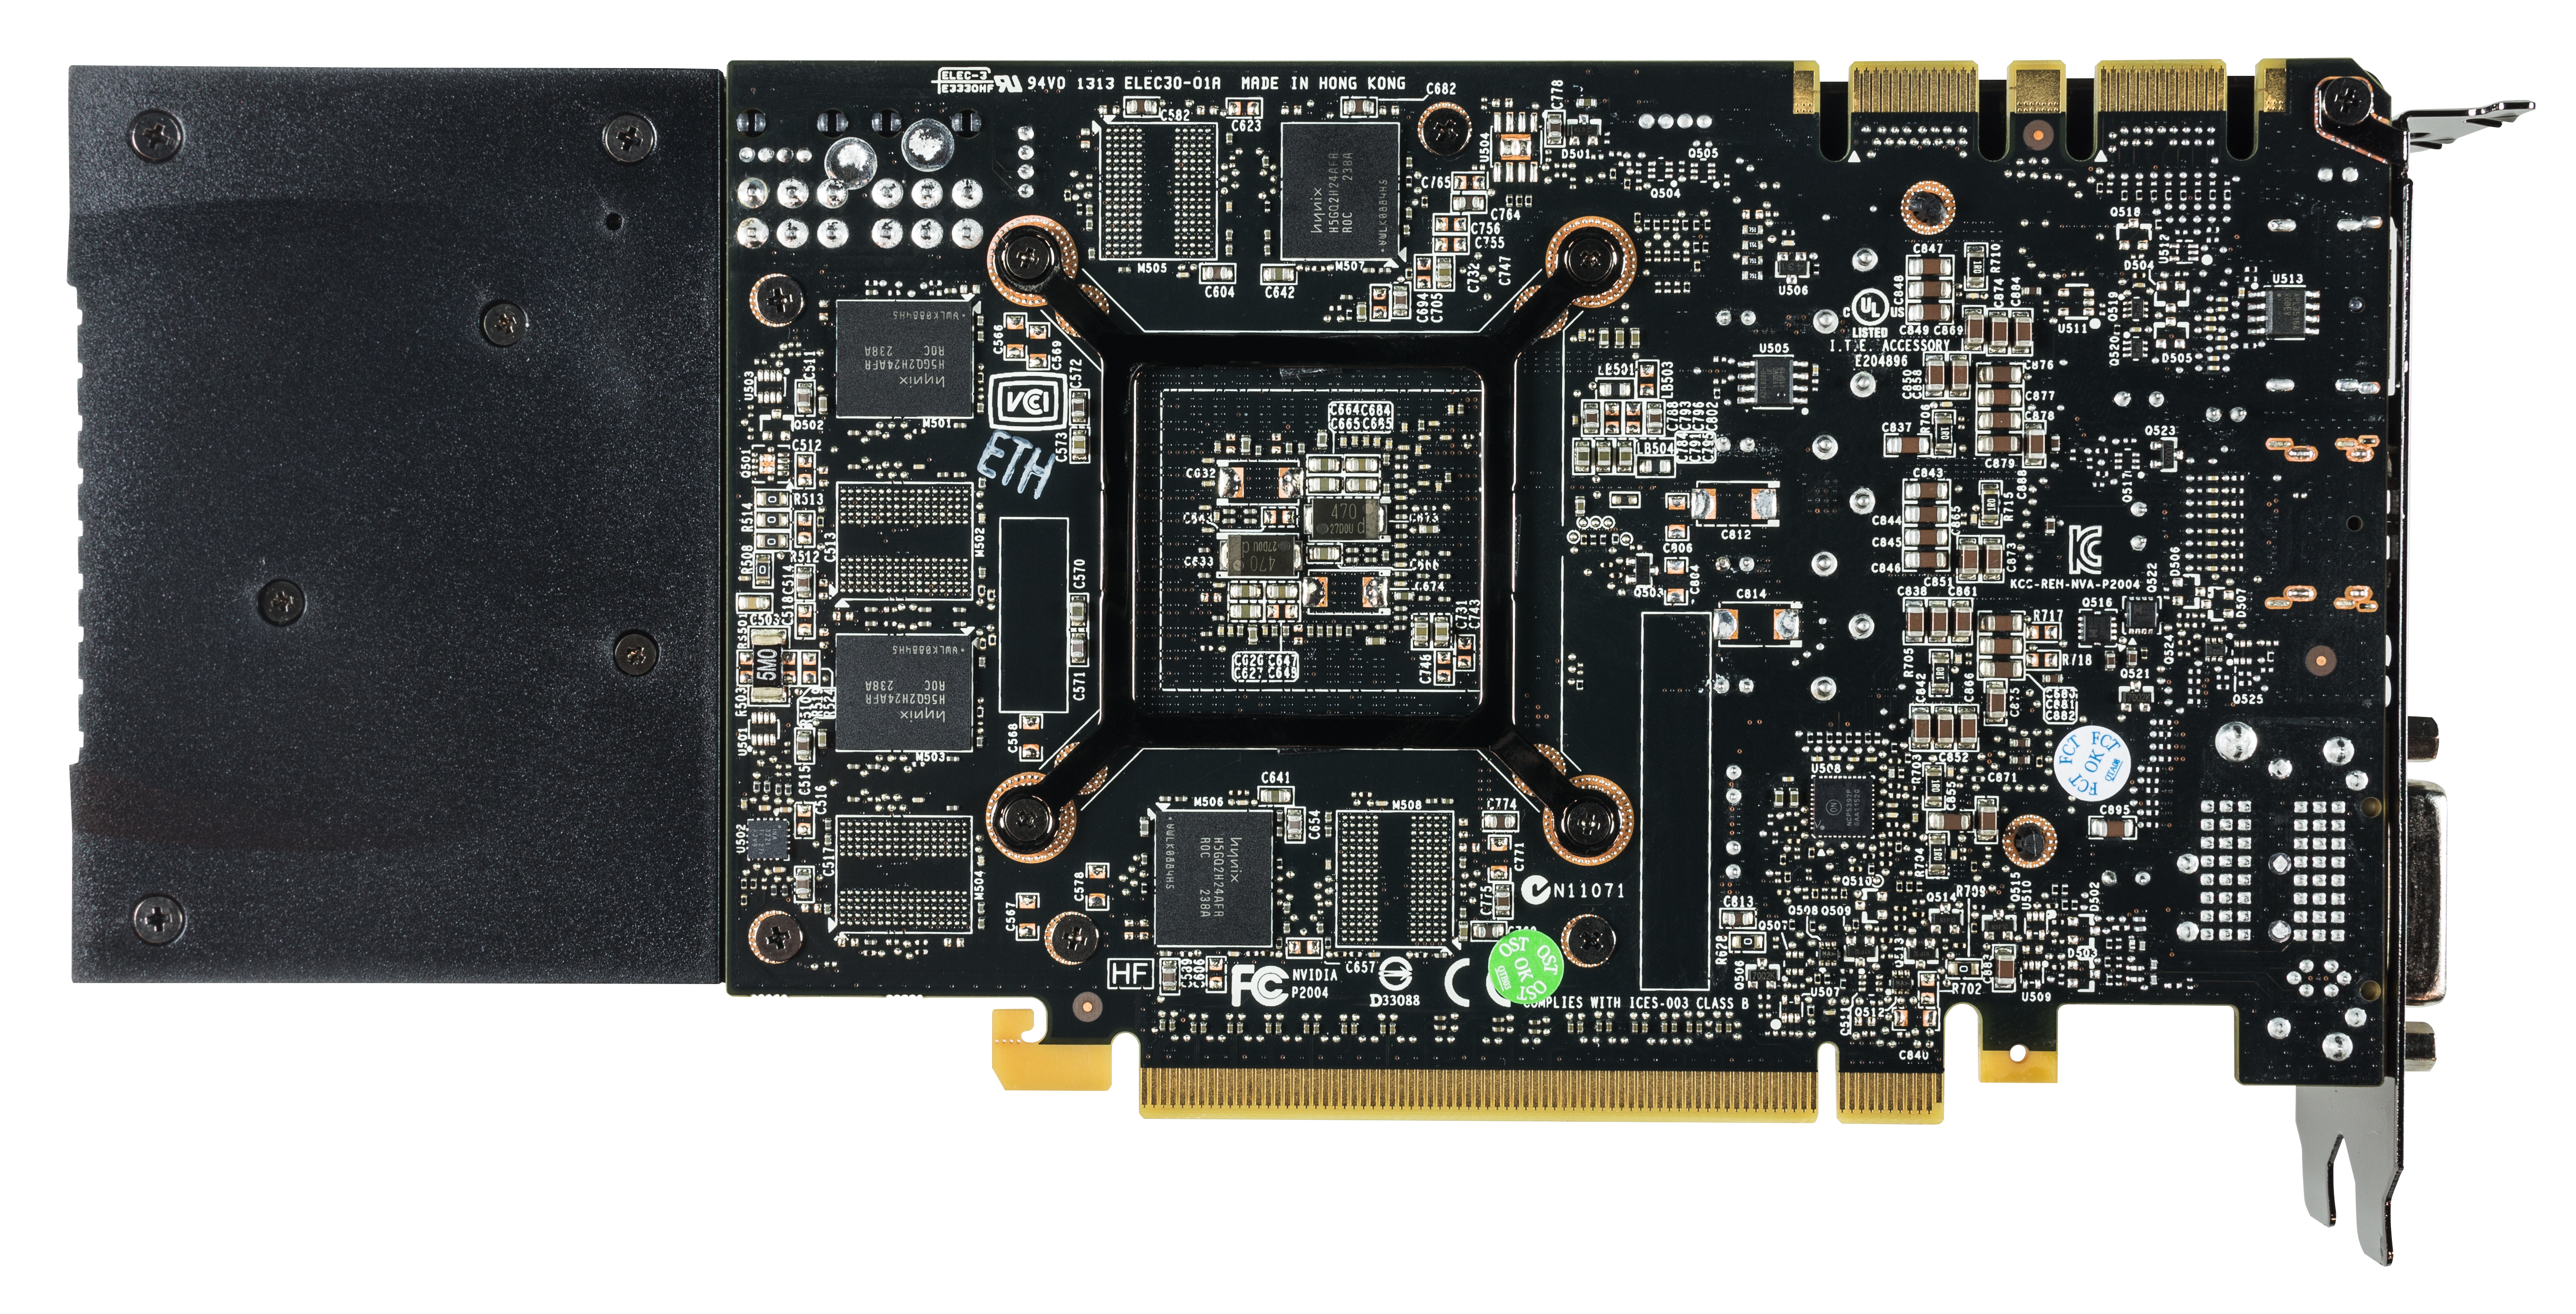 [MOVED] Hacking NVidia Cards into their Professional ...